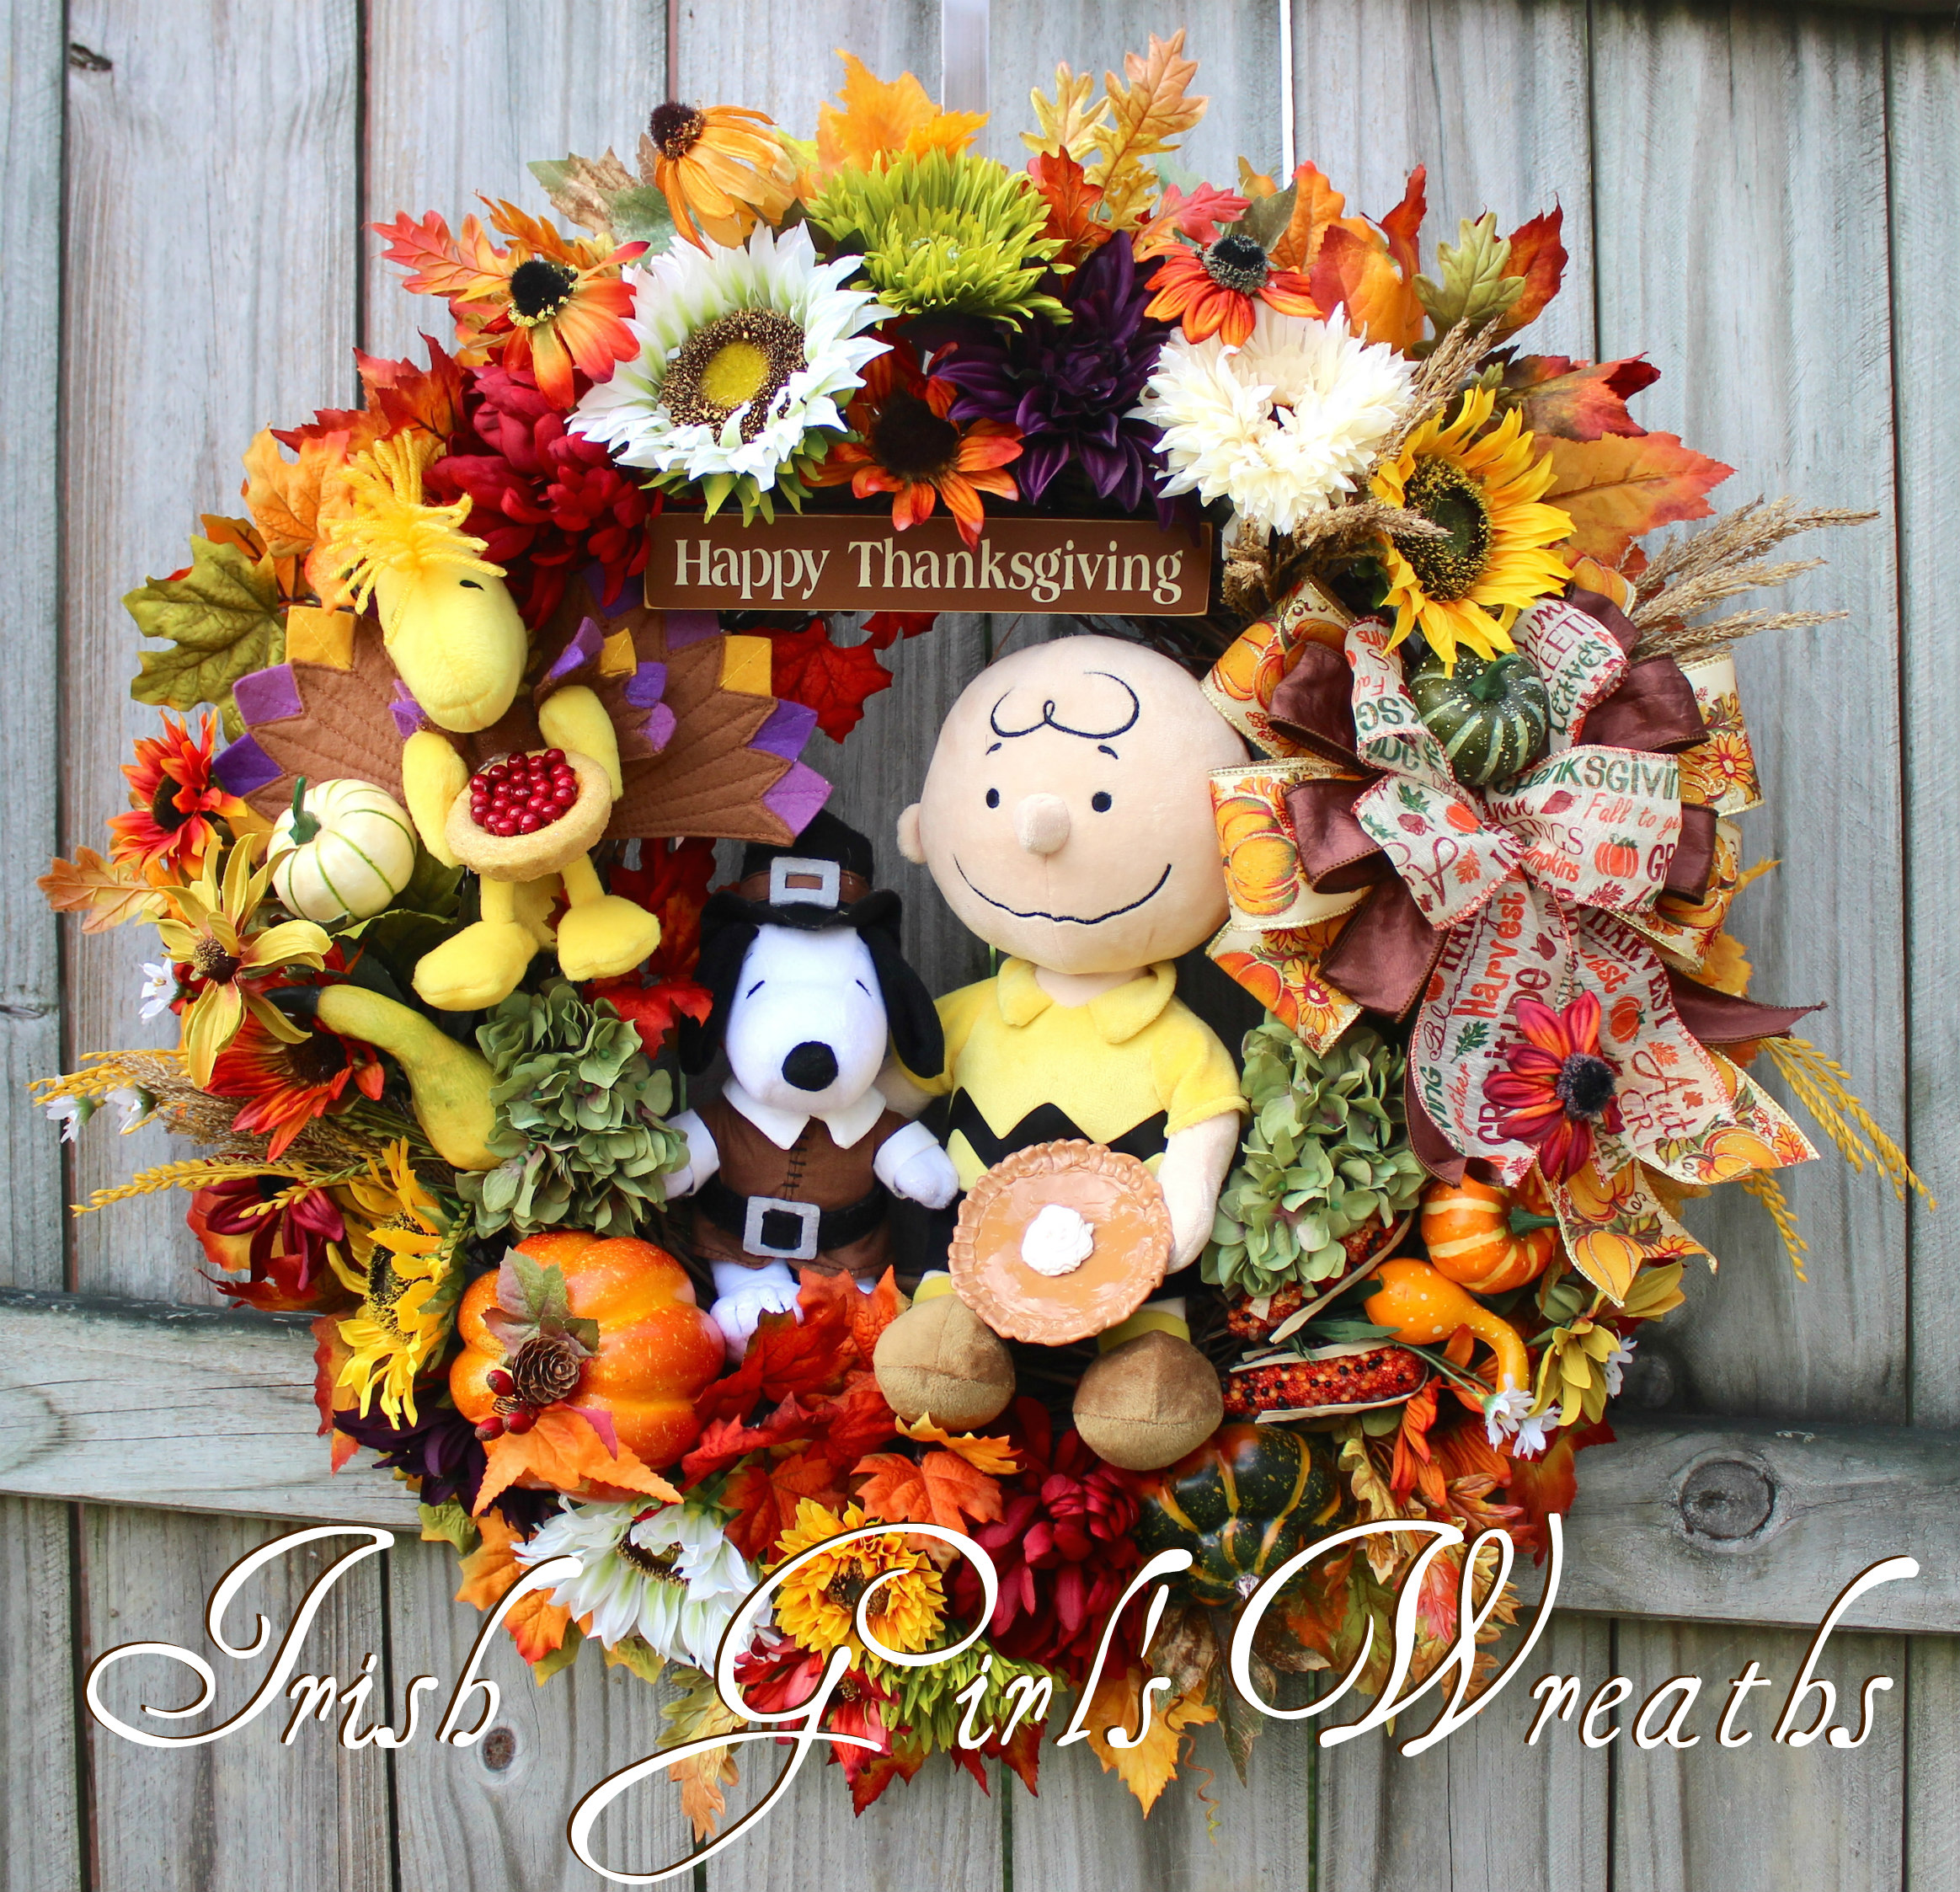 Deluxe Charlie Brown Thanksgiving Wreath, for Linda